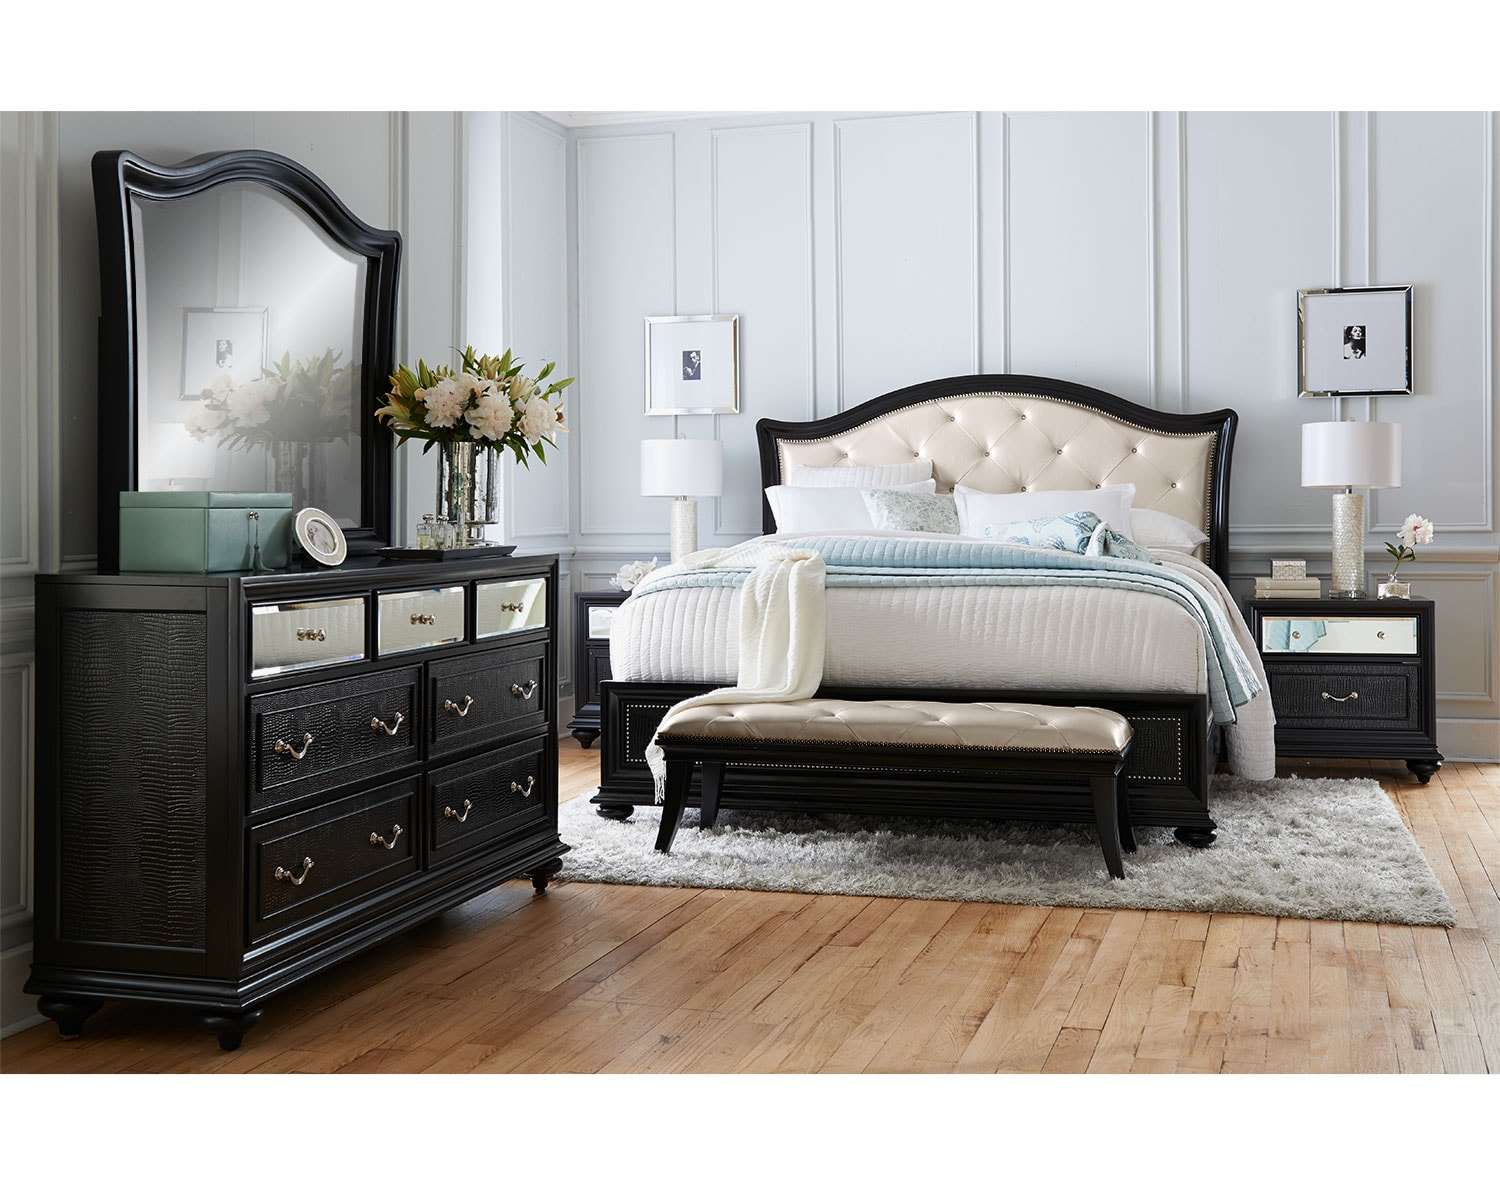 The Marilyn Collection - Ebony | Value City Furniture and Mattresses